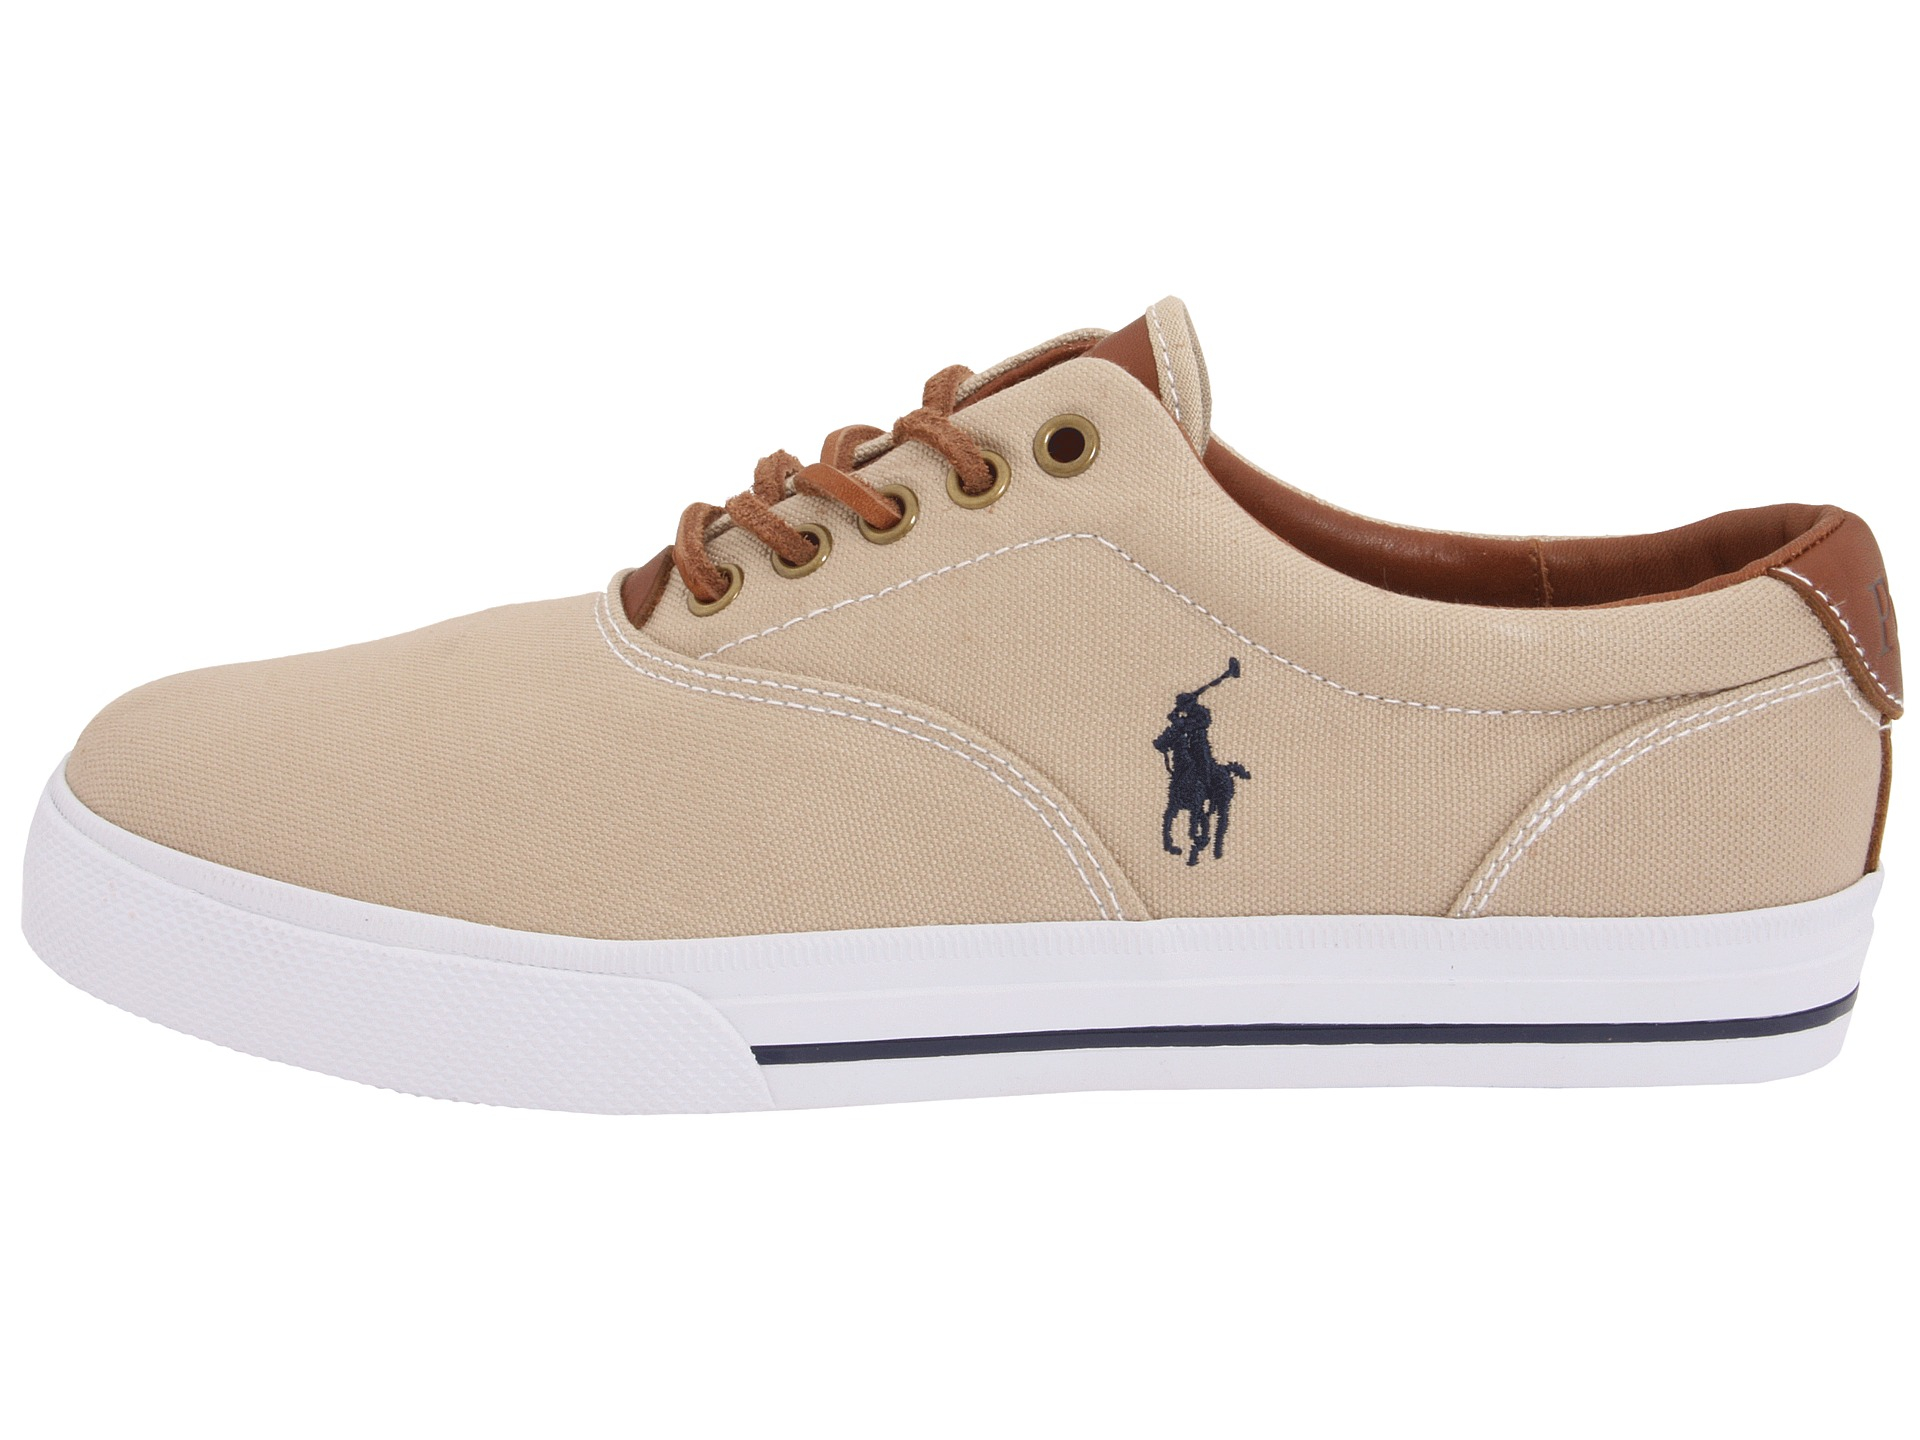 Polo Ralph Lauren Shoes Vaughn Canvas And Leather Sneakers